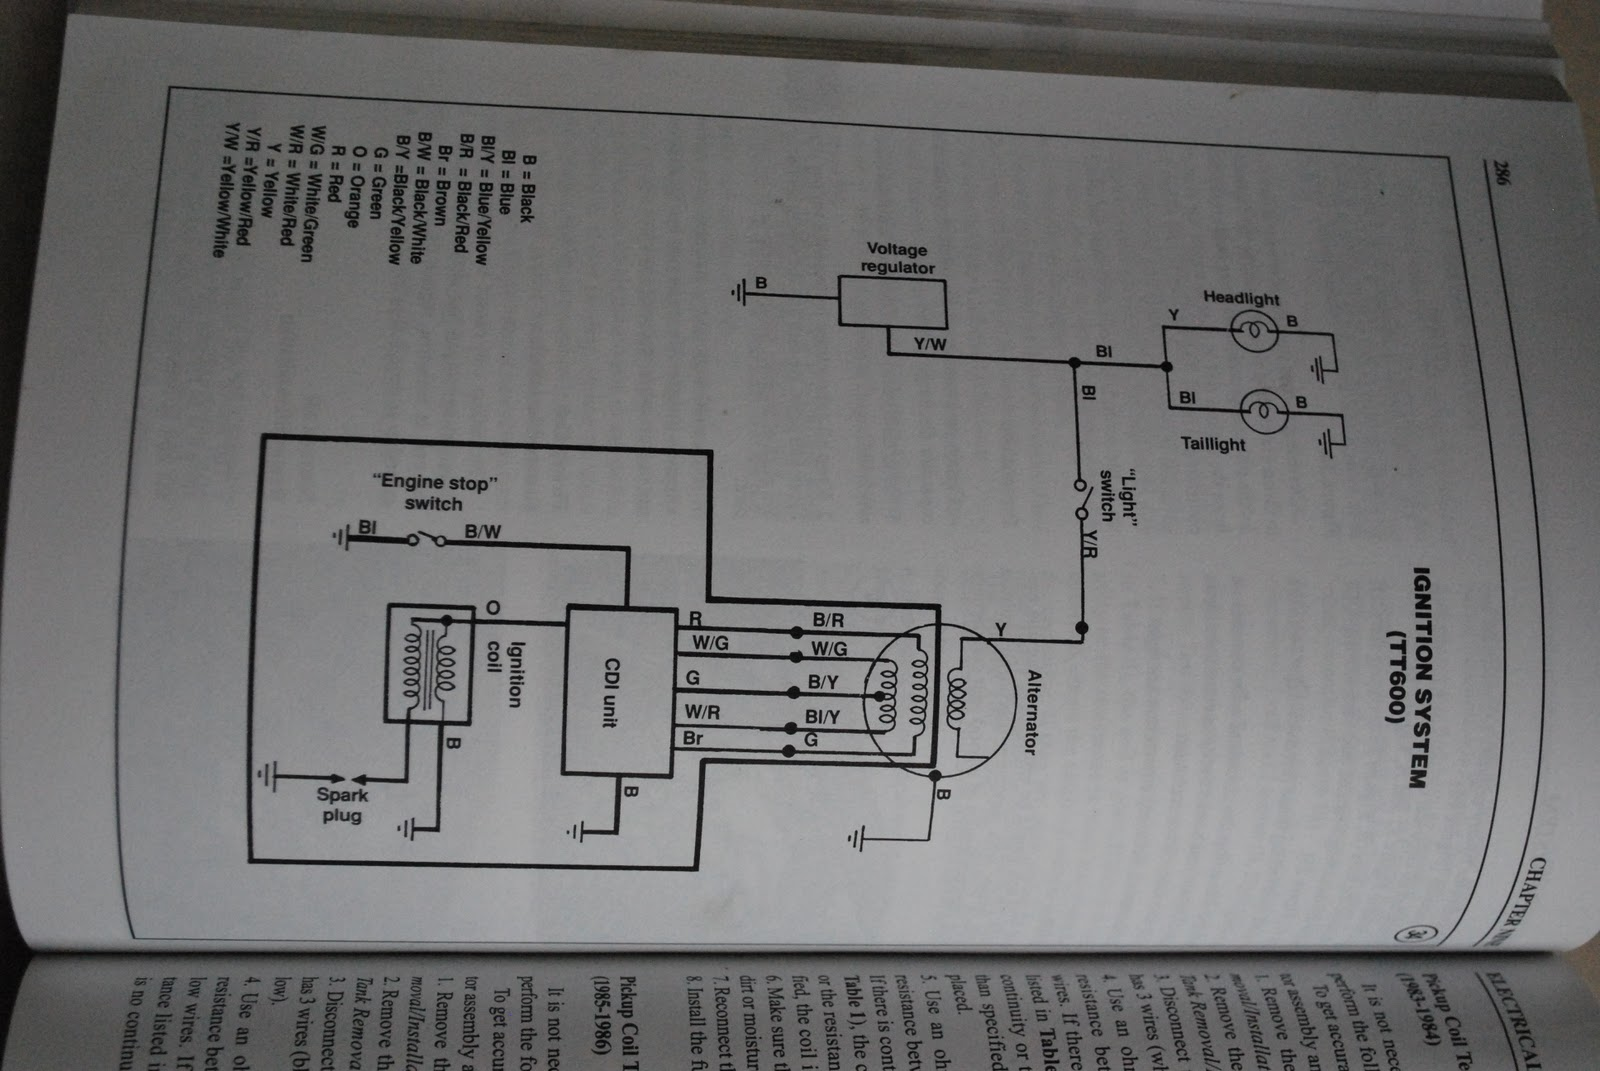 1983 Yamaha Maxim Wiring Diagrams Manual Of Diagram Xj650 1100 As Well 1982